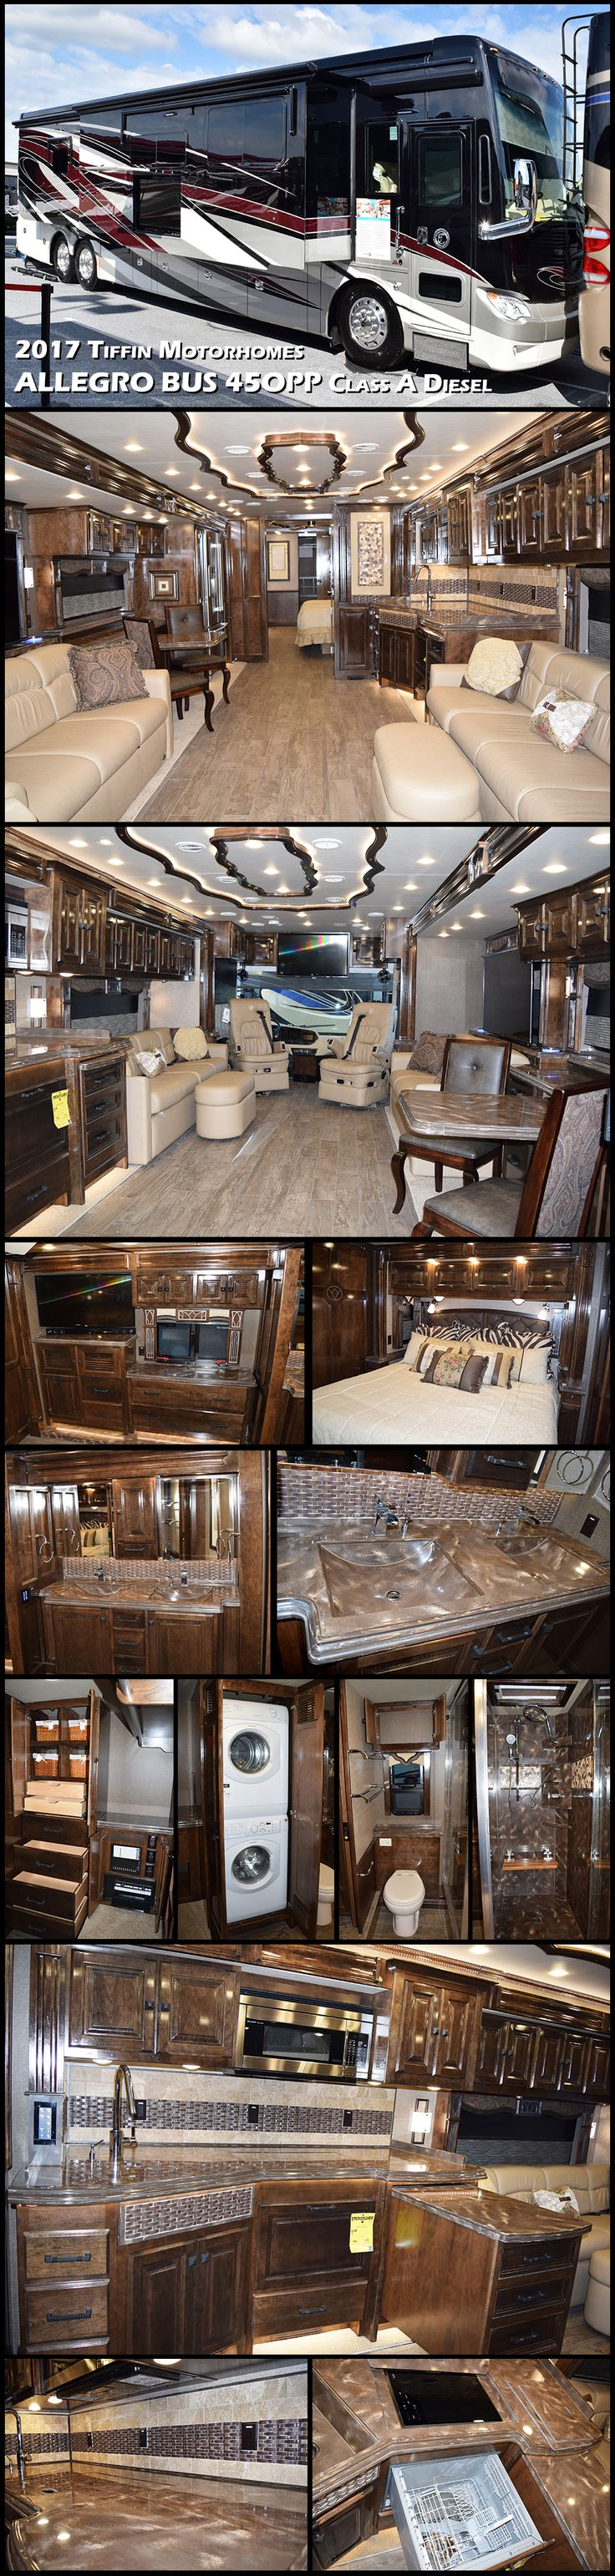 2017 Tiffin Motorhomes ALLEGRO BUS 45OPP — Home, sweet motorhome. Luxury is well addressed in Tiffins most popular coach for full-time RVers. Combining five-star amenities with down-home comfort, this coach is big on space, generous with features, and one of the most powerful diesel pushers on the road.